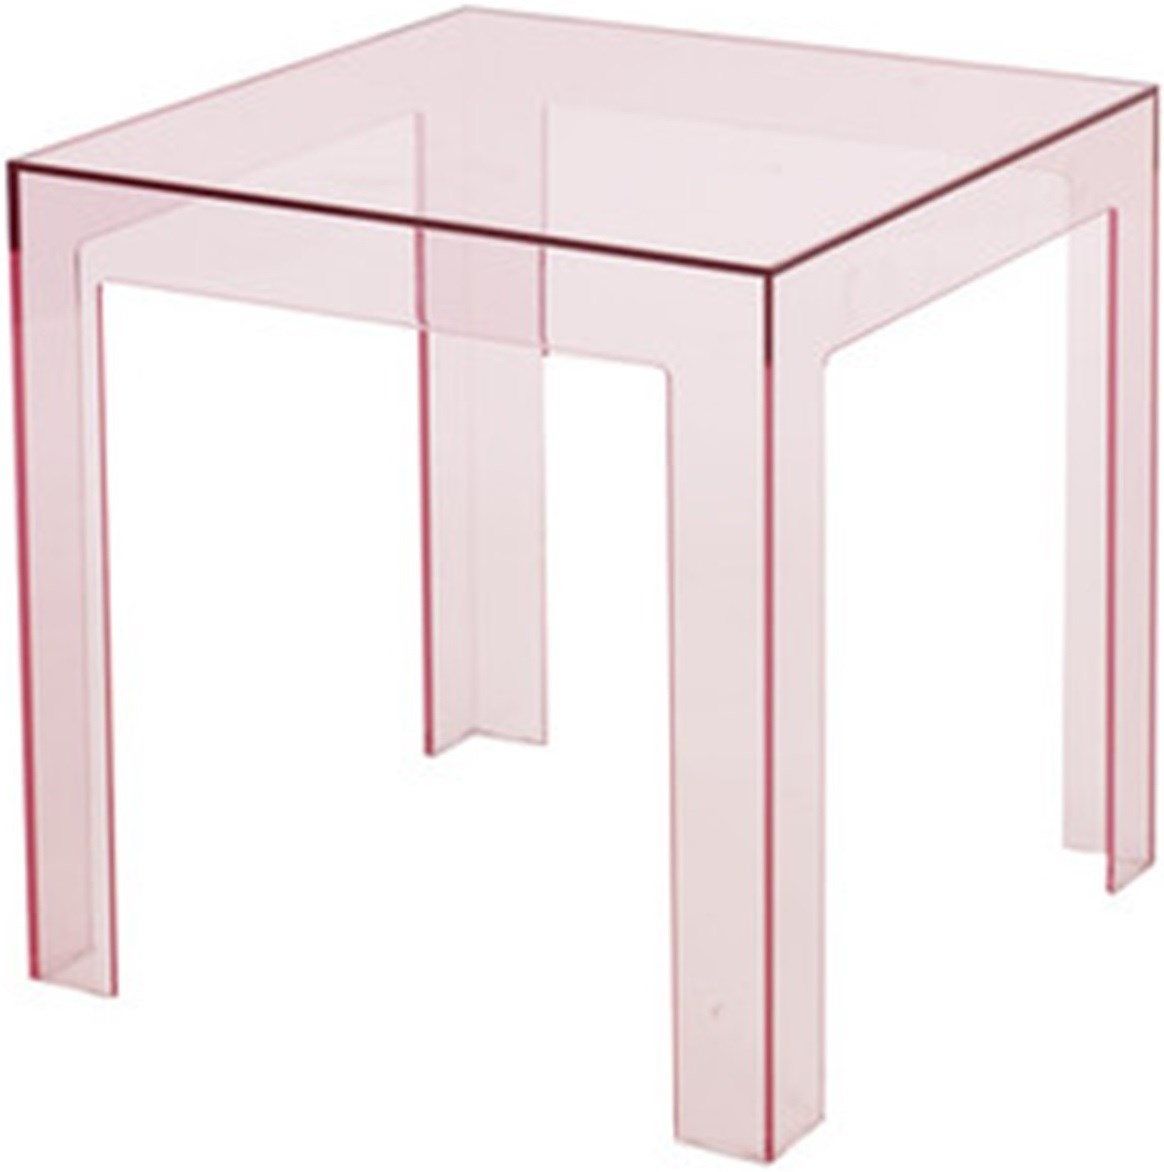 Kartell Jolly Tables Neenas Lighting : kartell jolly table transparent pink from www.neenaslighting.com size 1164 x 1172 jpeg 69kB